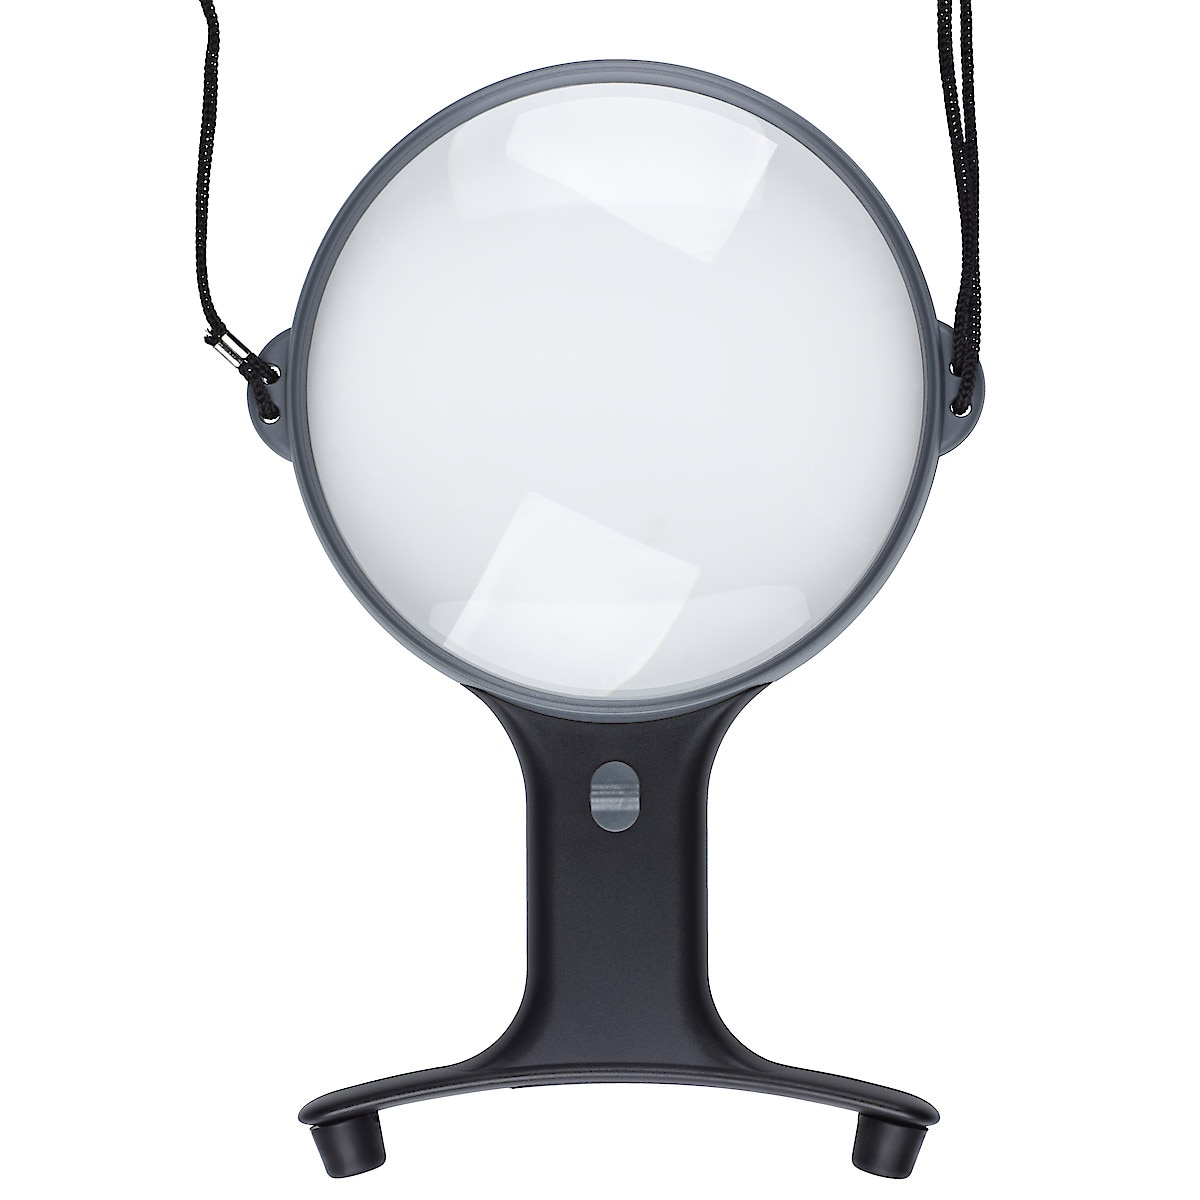 Handsfree Magnifying Glass with Worklight